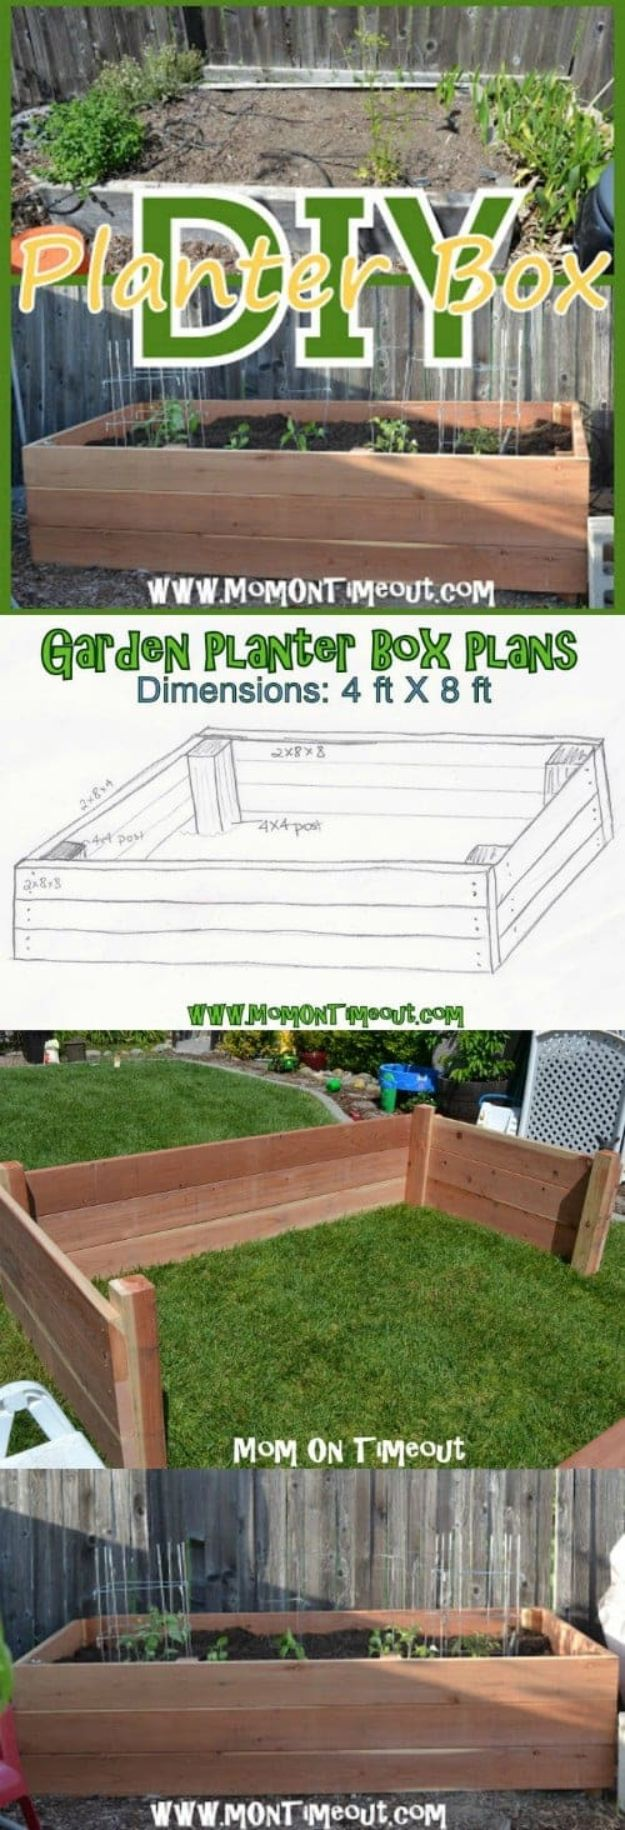 DIY Garden Beds - DIY Garden Planter Box - Easy Gardening Ideas for Raised Beds and Planter Boxes - Free Plans, Tutorials and Step by Step Tutorials for Building and Landscaping Projects - Update Your Backyard and Gardens With These Cheap Do It Yourself Ideas http://diyjoy.com/diy-garden-beds